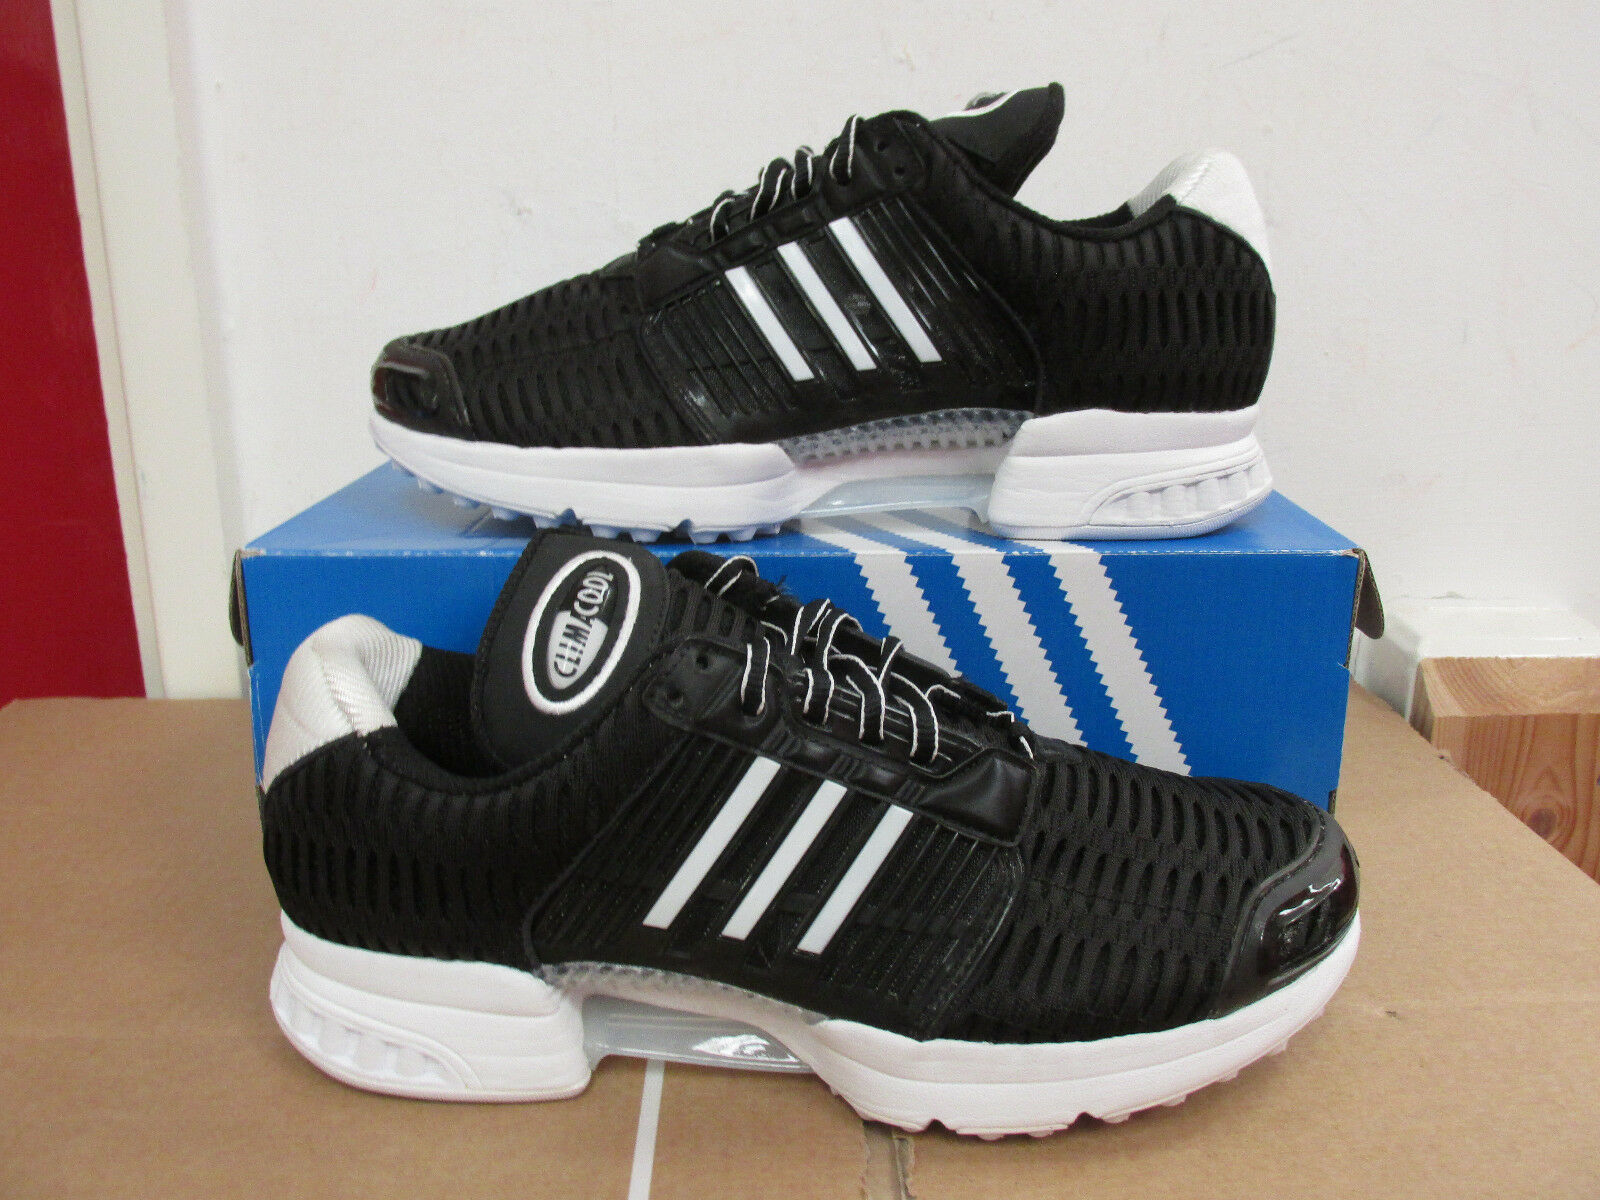 Adidas Originals Clima Uomo Cool 1 BB0670  Uomo Clima Running Trainers Sneakers CLEARANCE f35a21